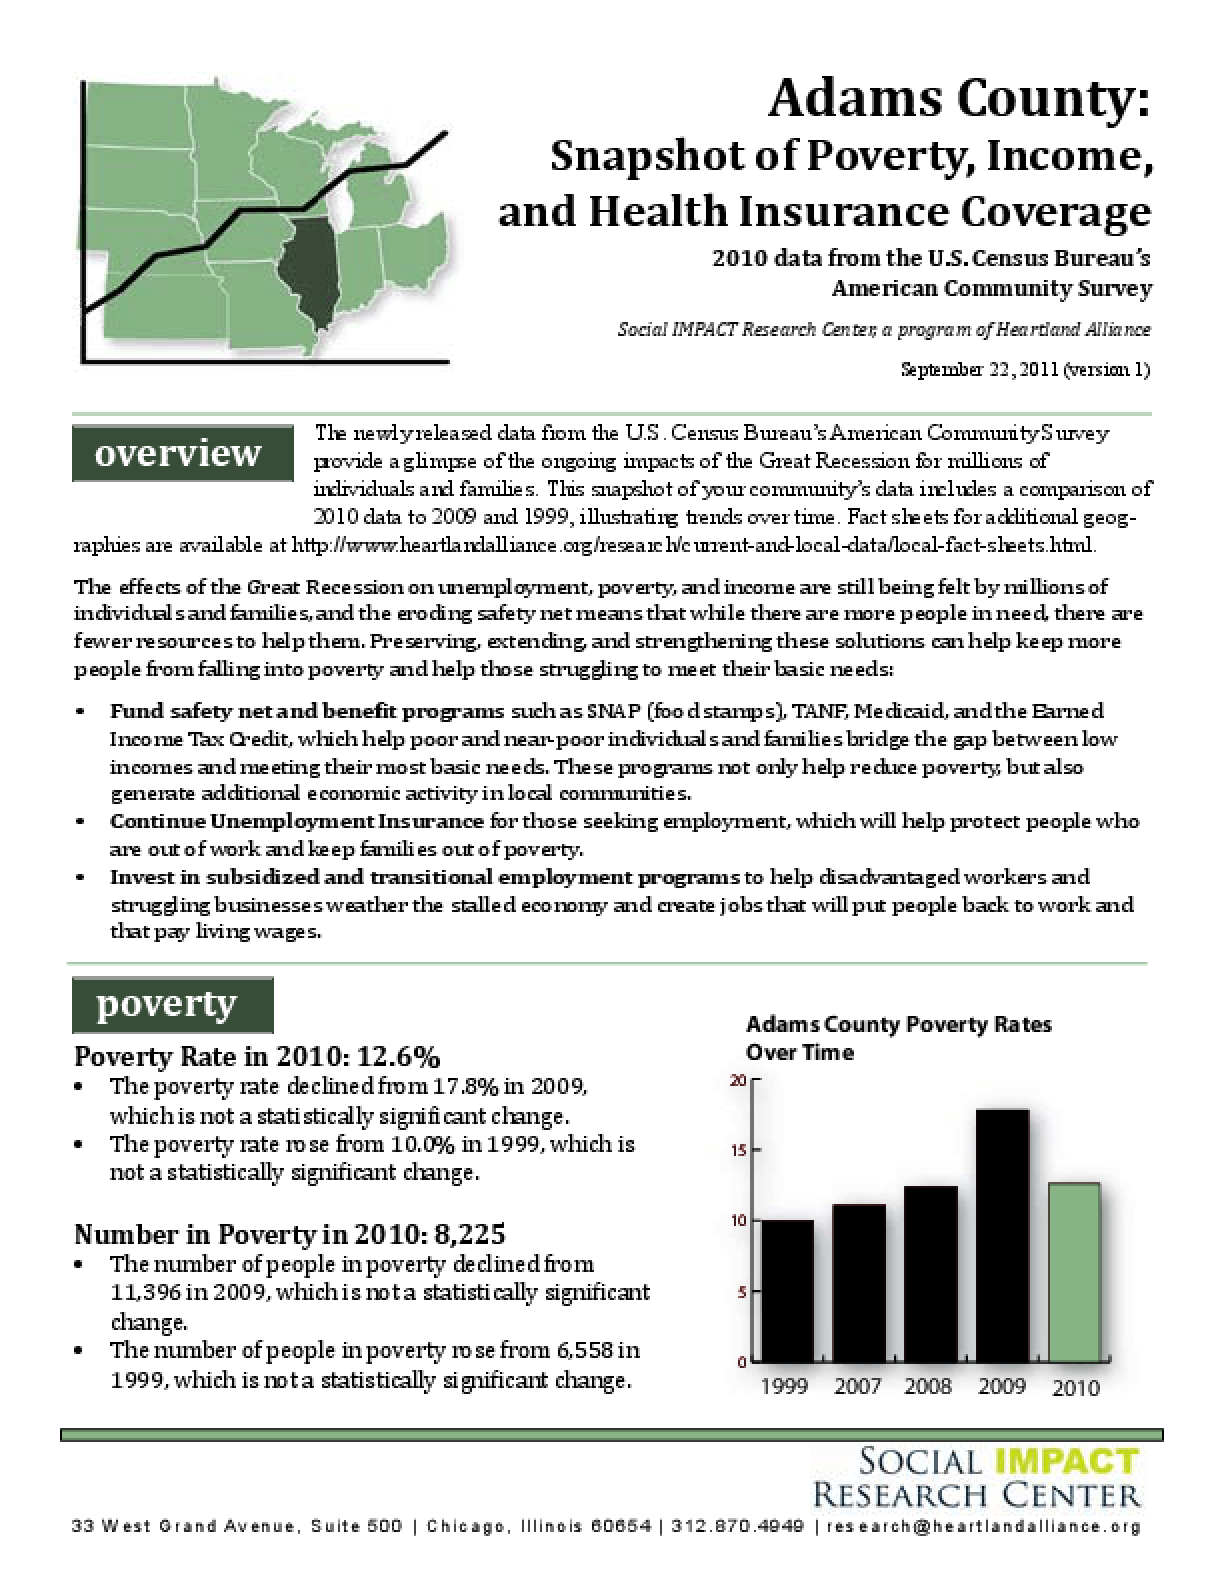 Adams County: Snapshot of Poverty, Income, and Health Insurance Coverage